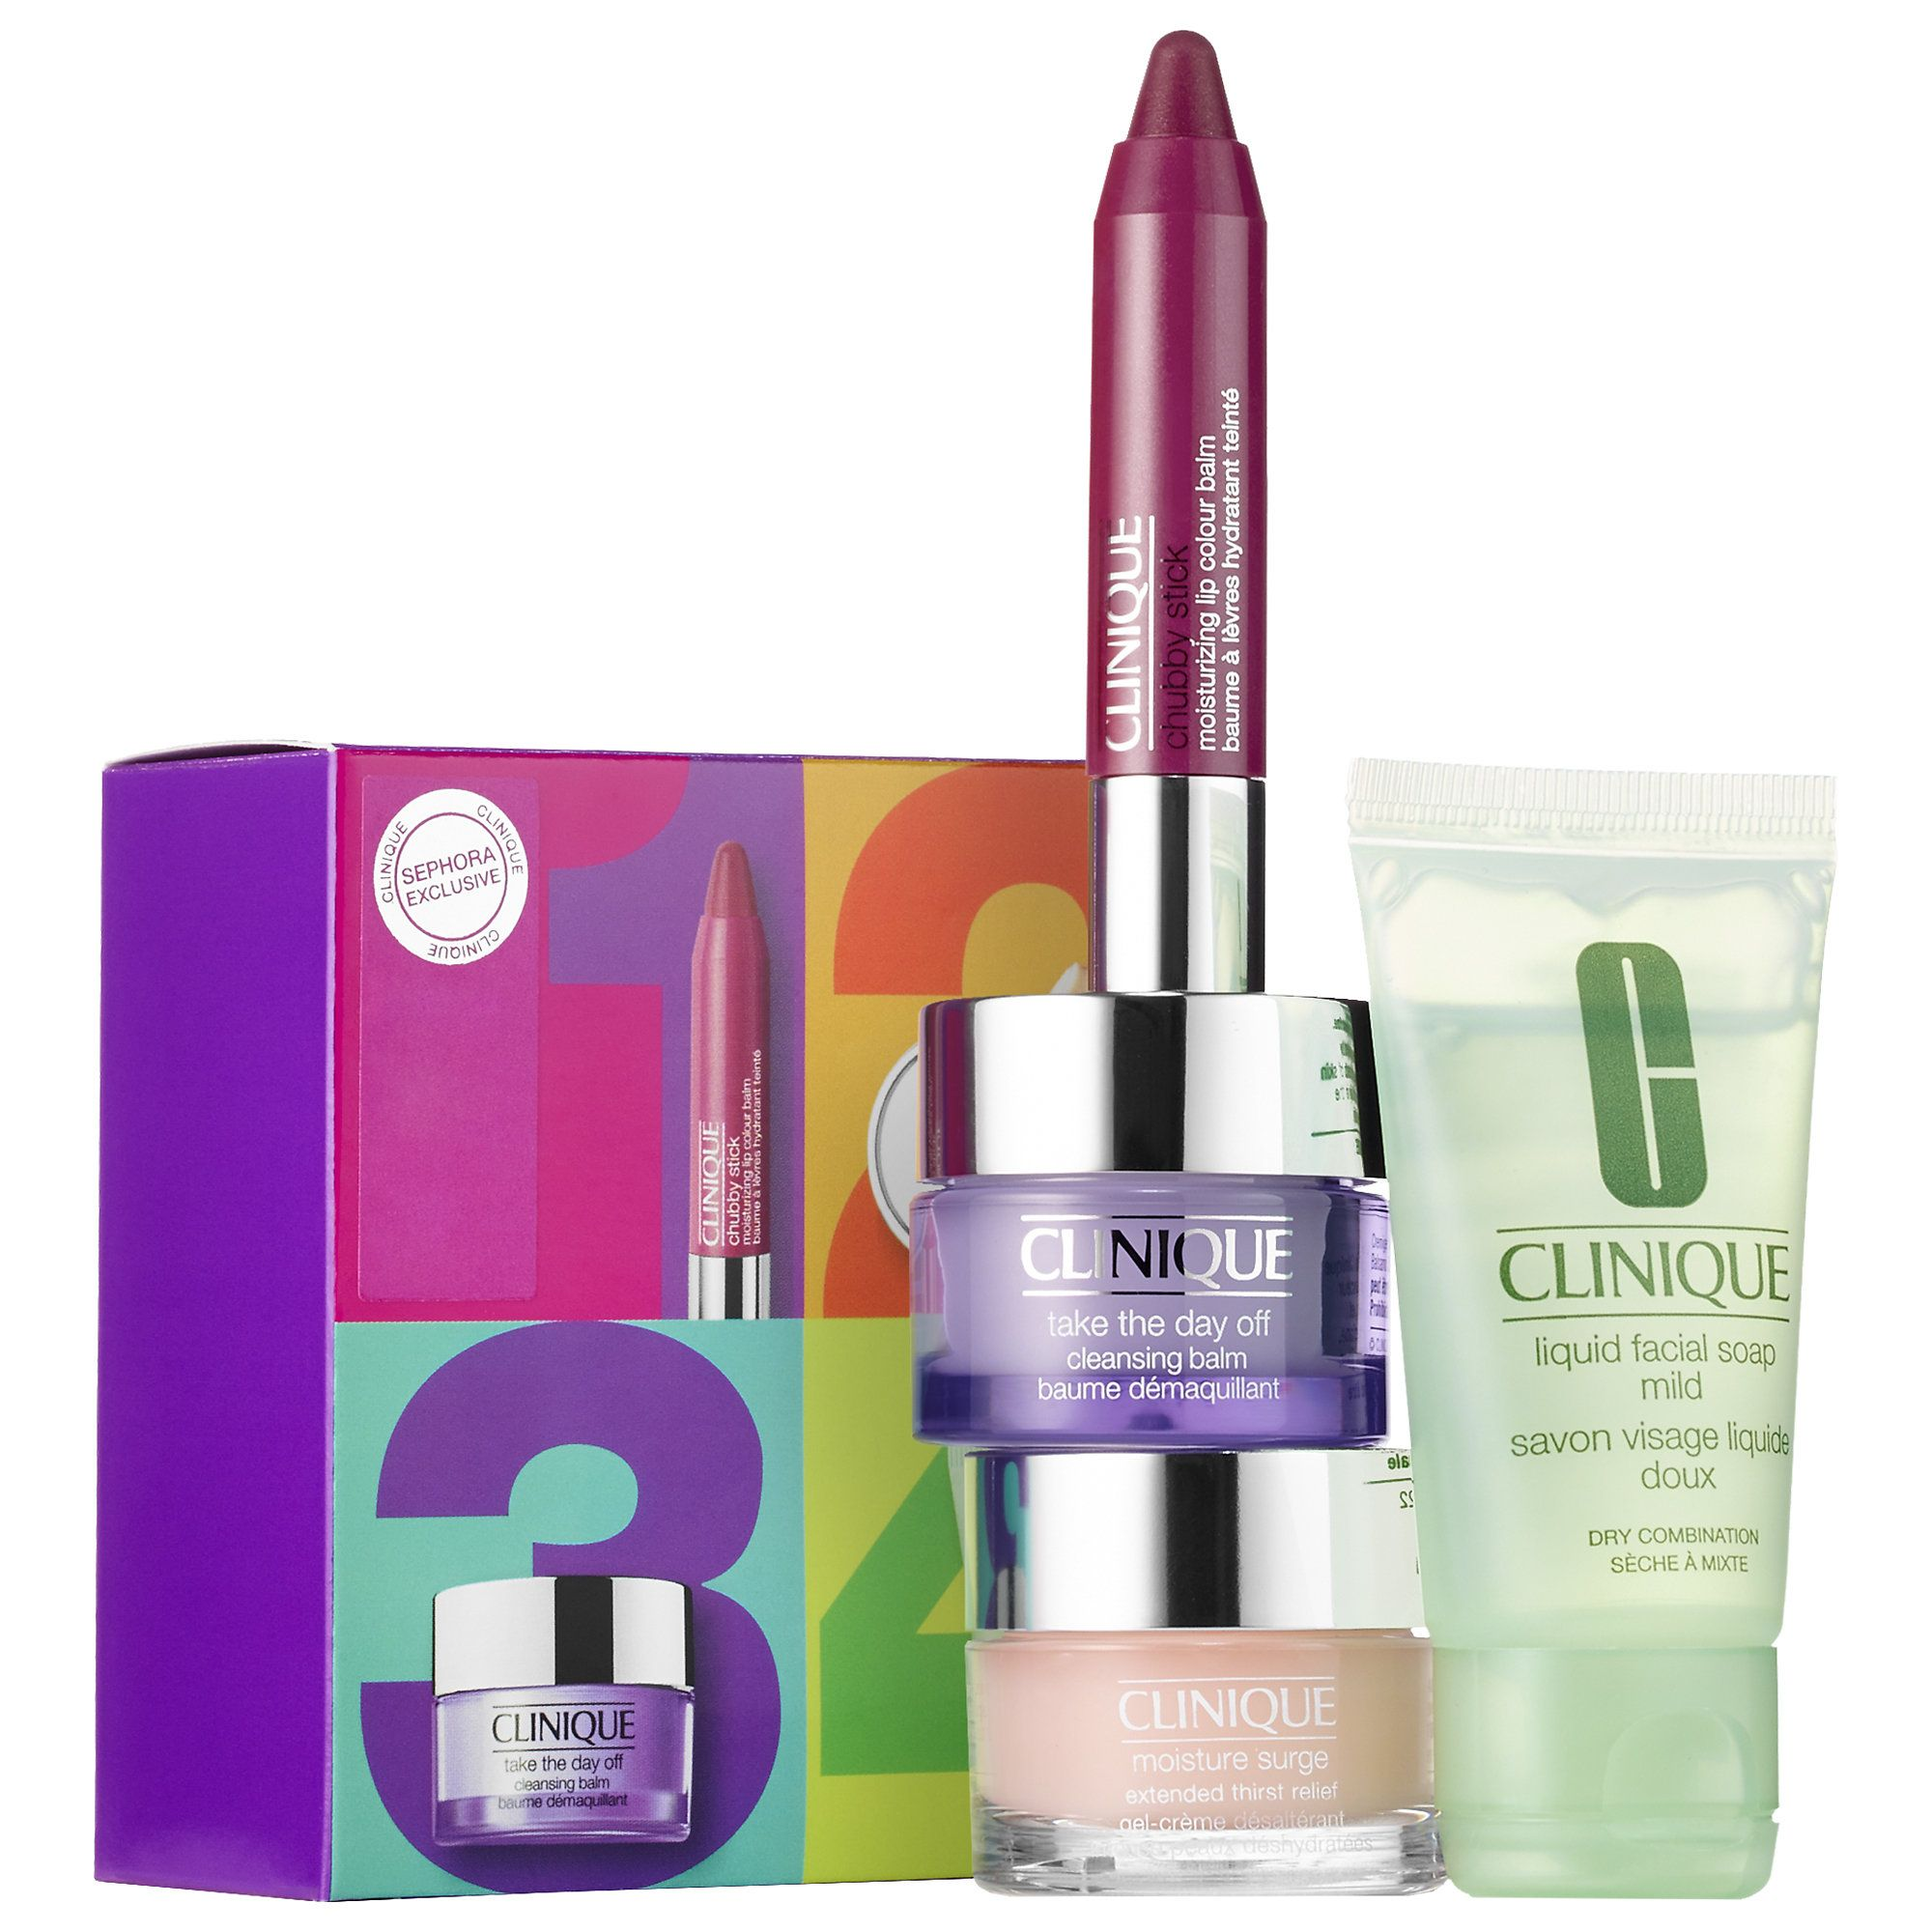 Clinique Little Holiday Helpers Christmas Shoppingchristmas 2015Christmas Gift